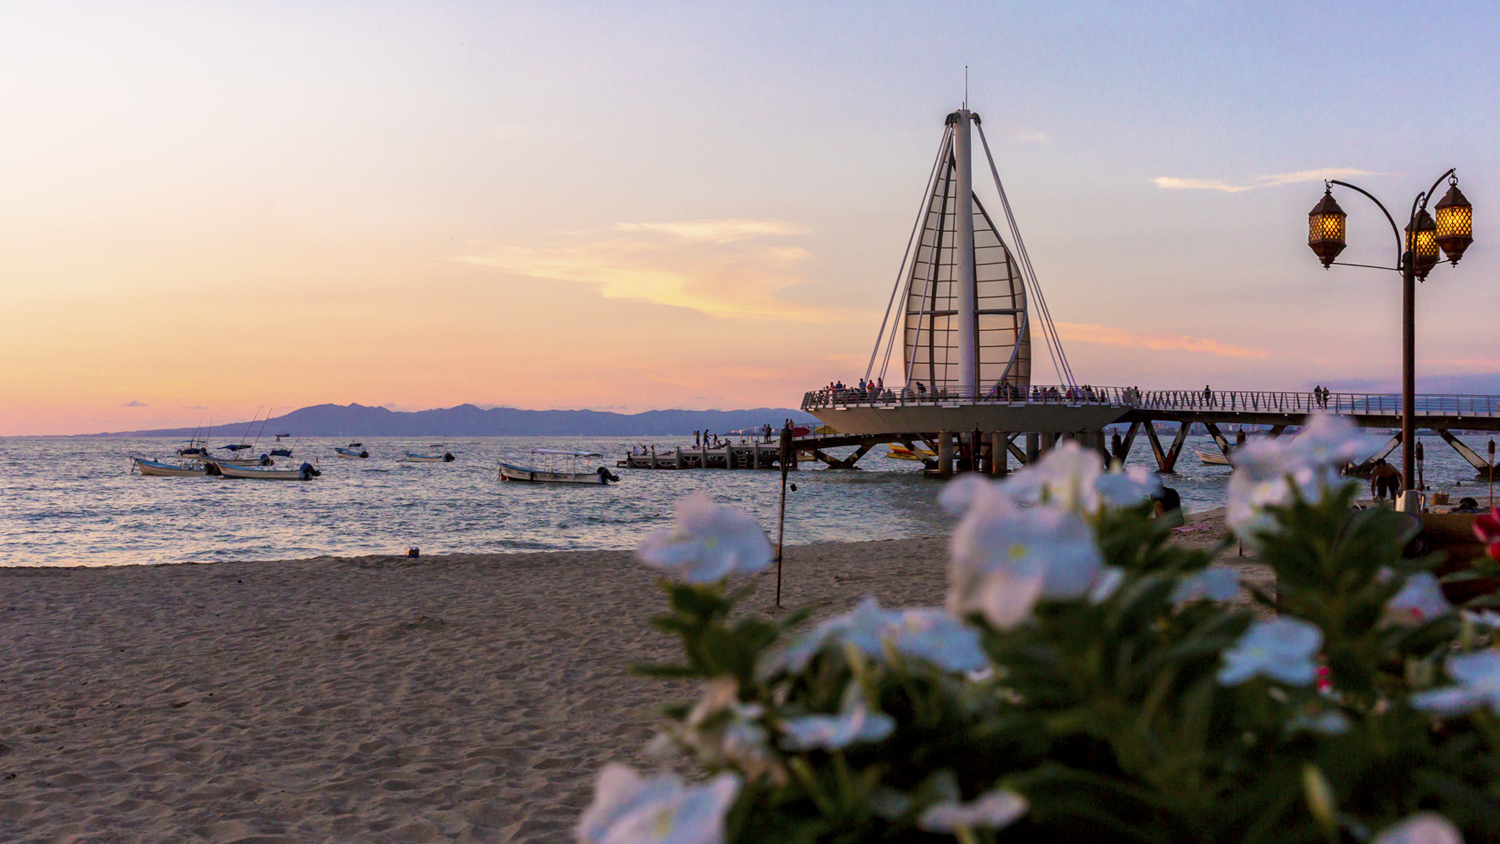 Puerto Vallarta Nominated as Best City by Condé Nast Traveler